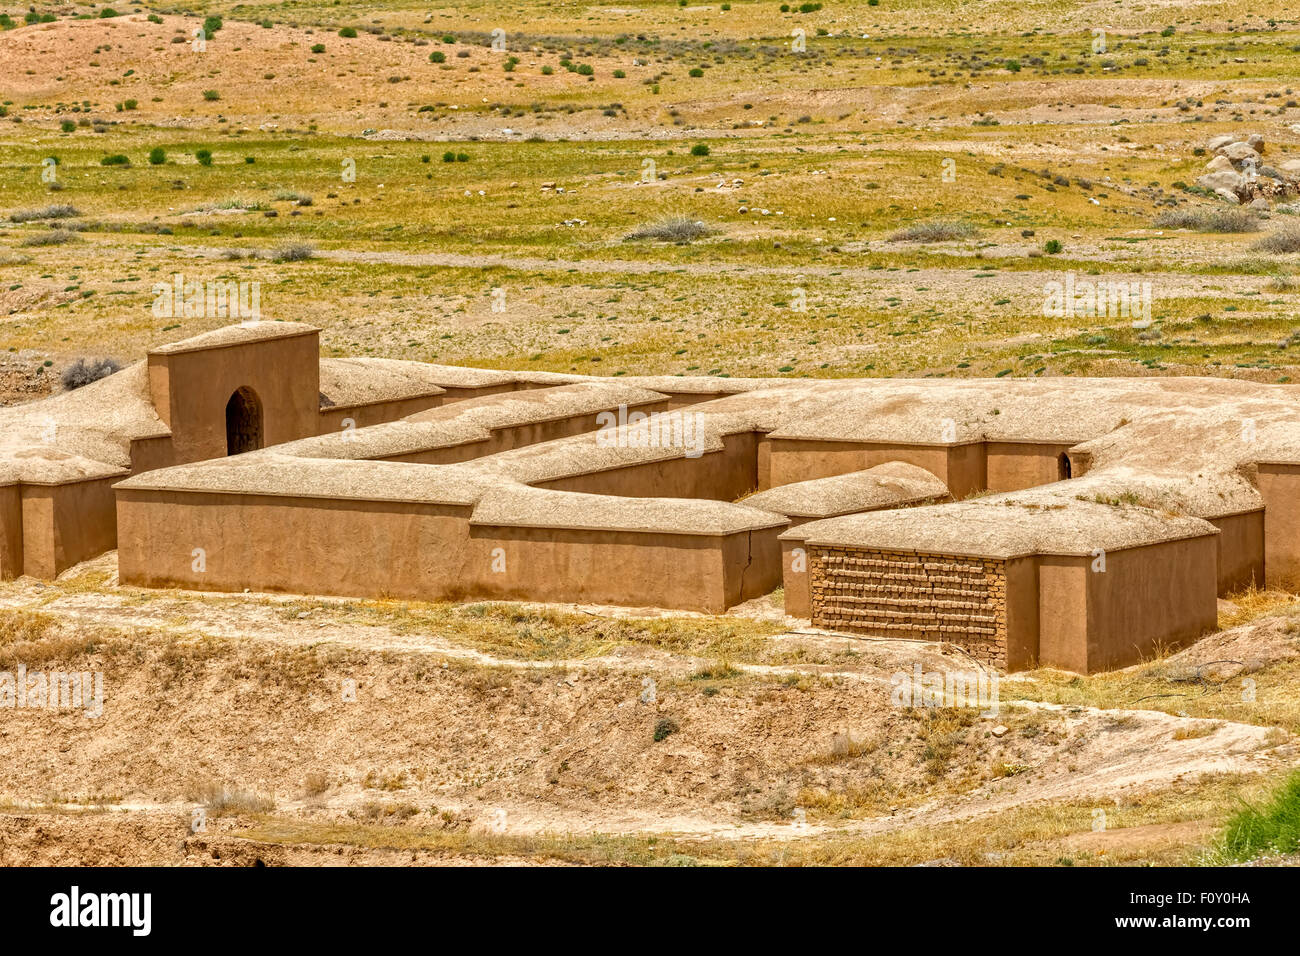 Persepolis Treasury - Stock Image